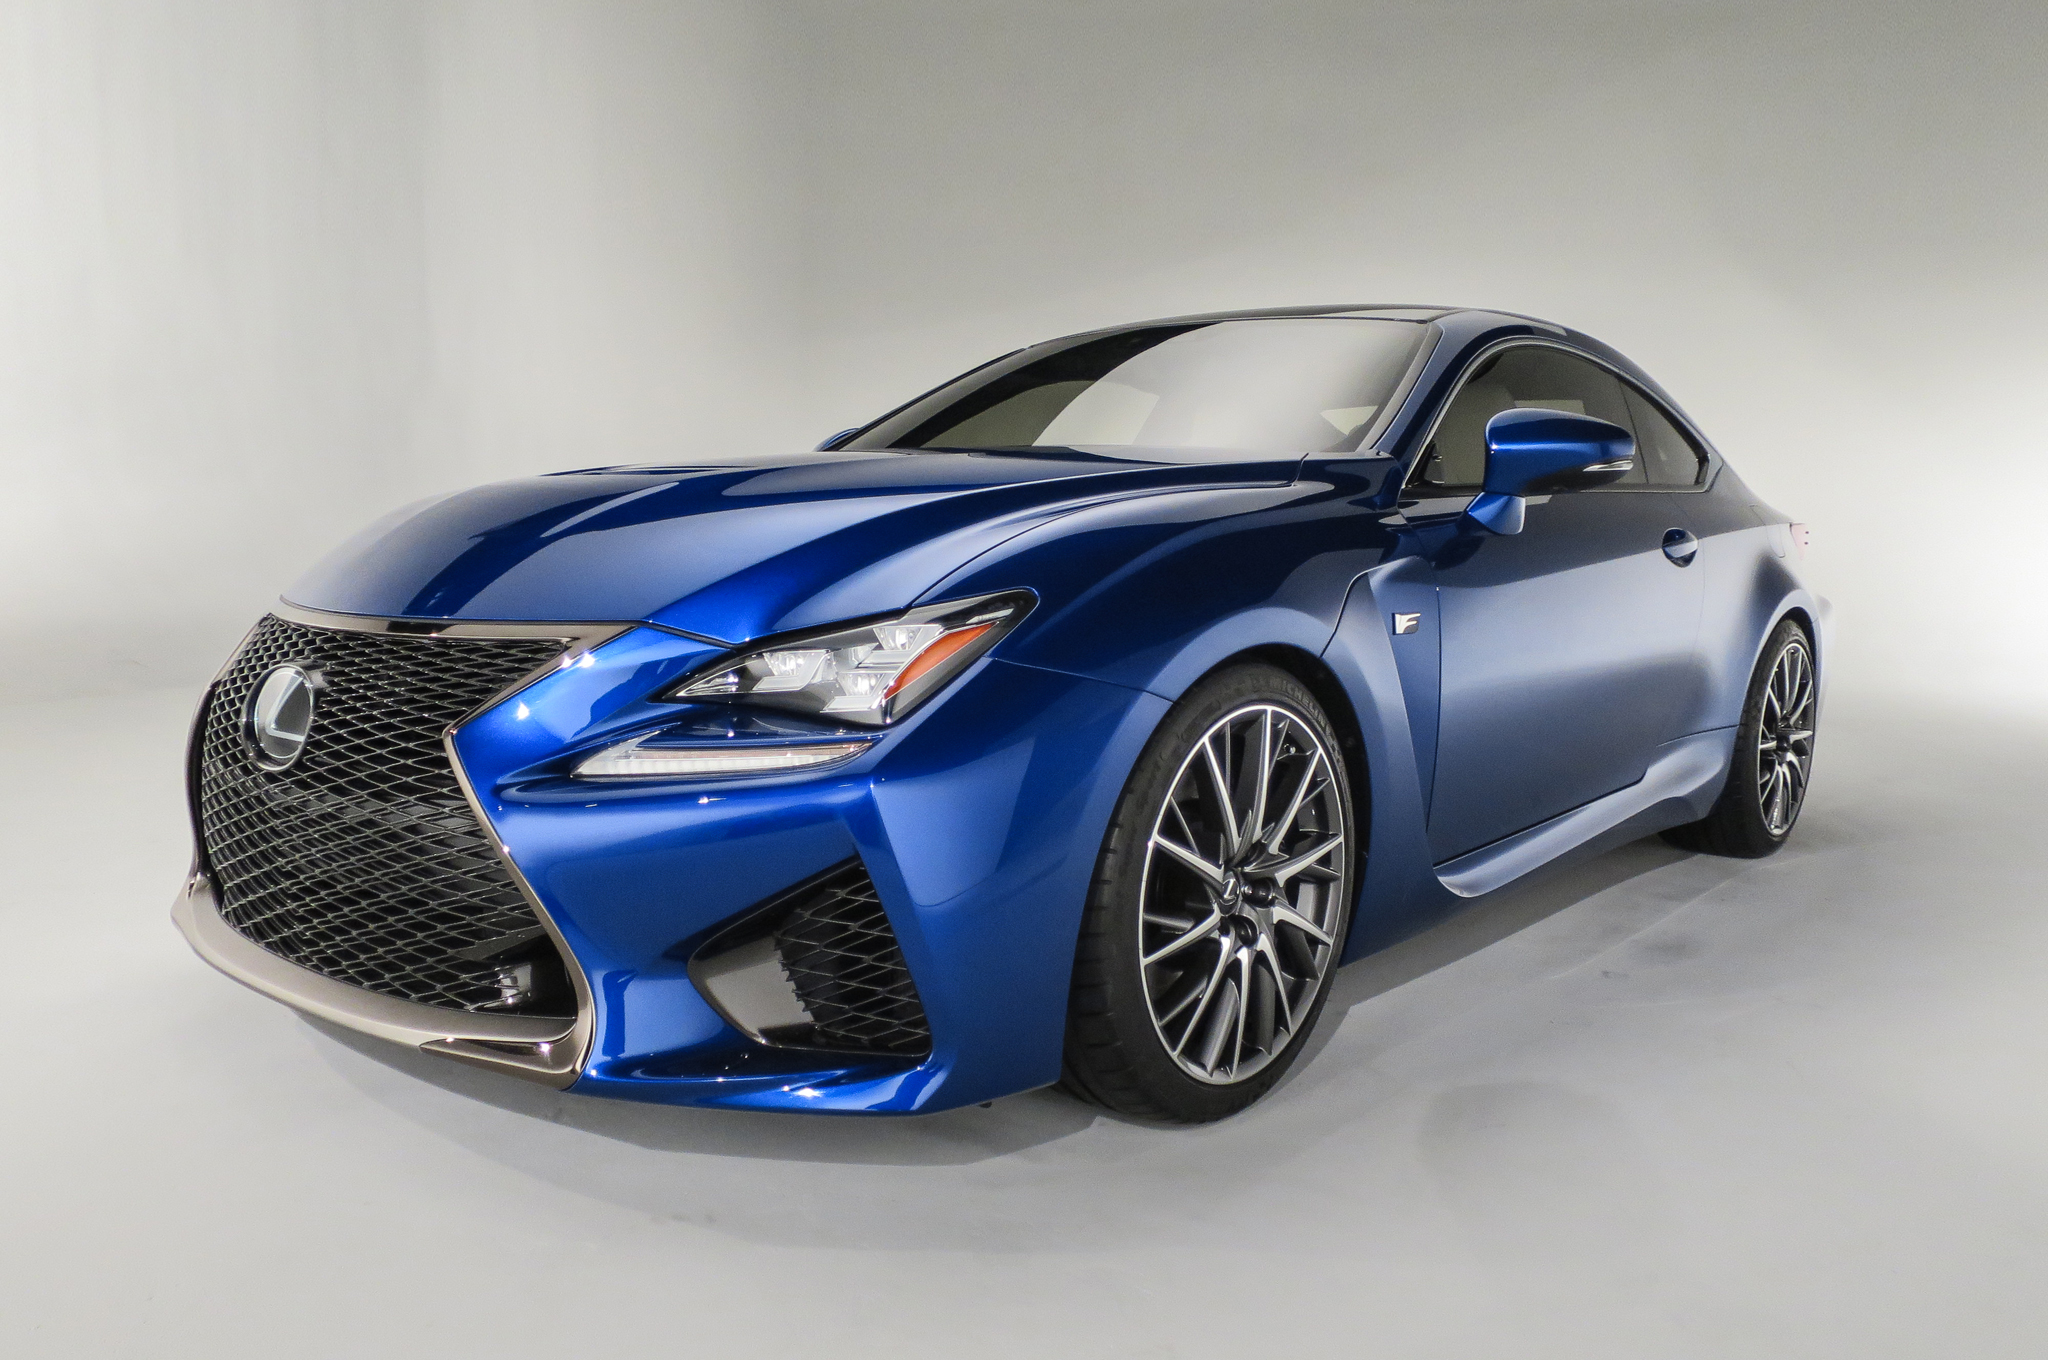 2015 Lexus RC F Design Photo